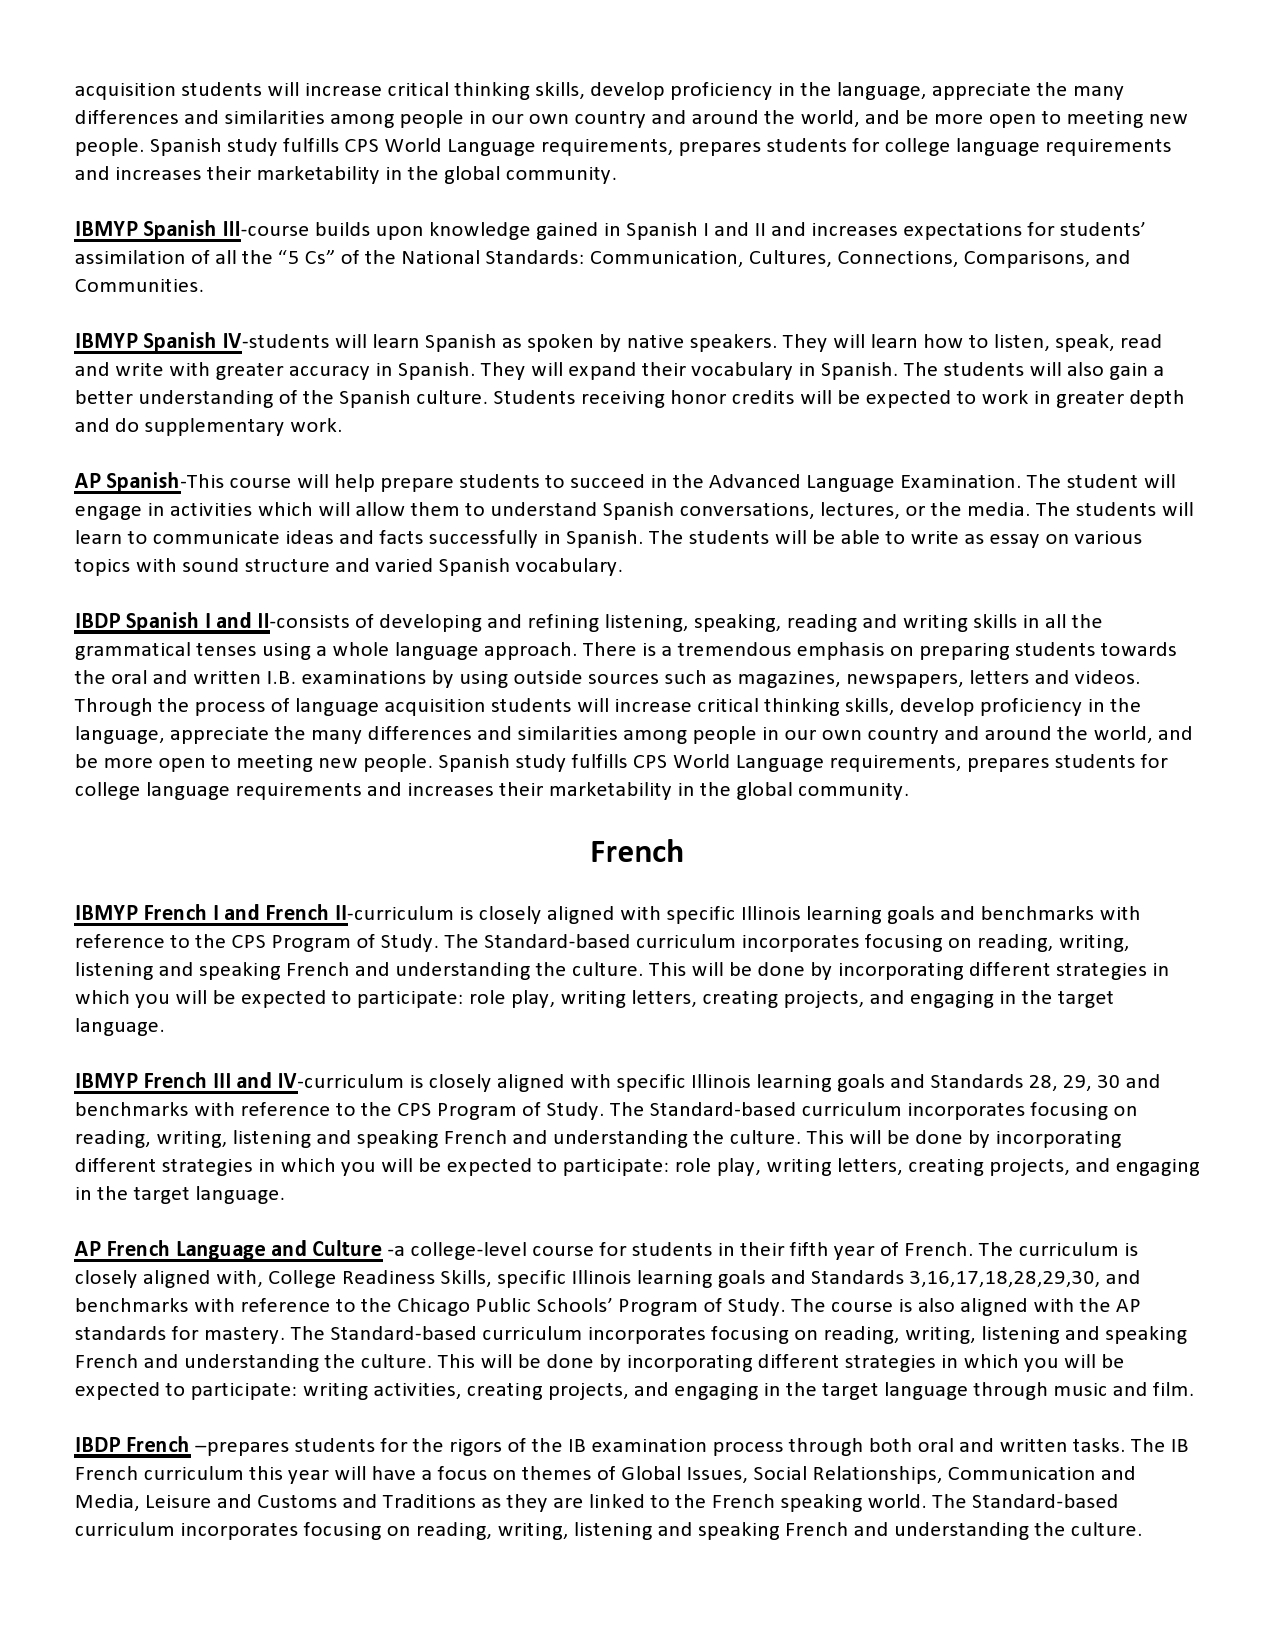 French essay academic essay on medicine tentative thesis statement academic essay on medicine tentative thesis statement definition la famille french essay vocabulary homework for you spiritdancerdesigns Choice Image